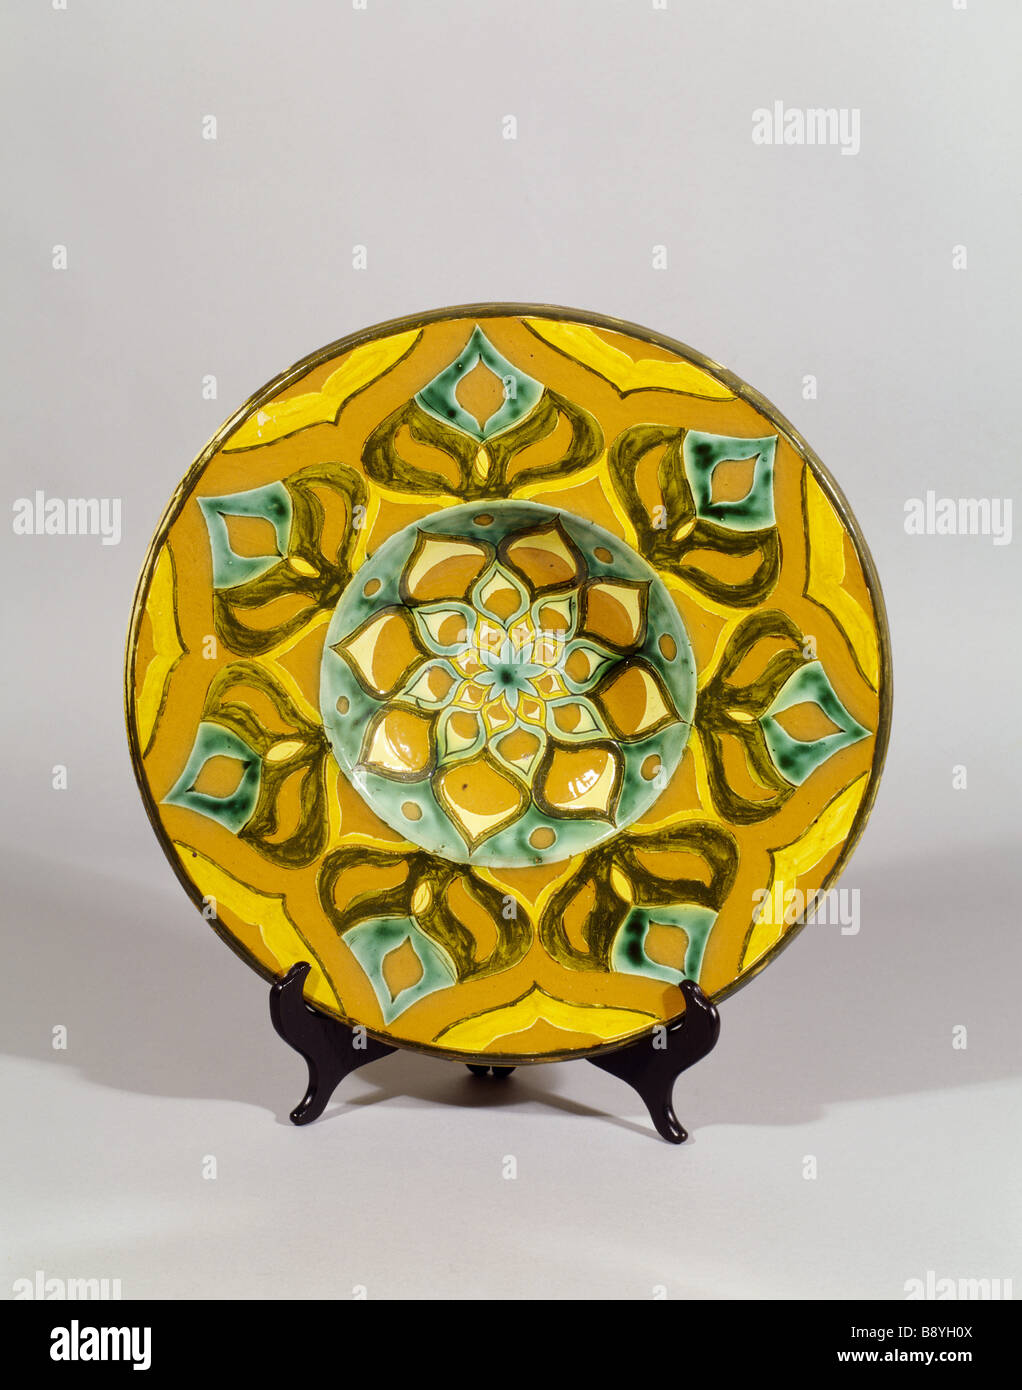 Della Robbia charger in the Morning Room at Standen a piece of ceramic with stylised flower pattern in yellow green - Stock Image